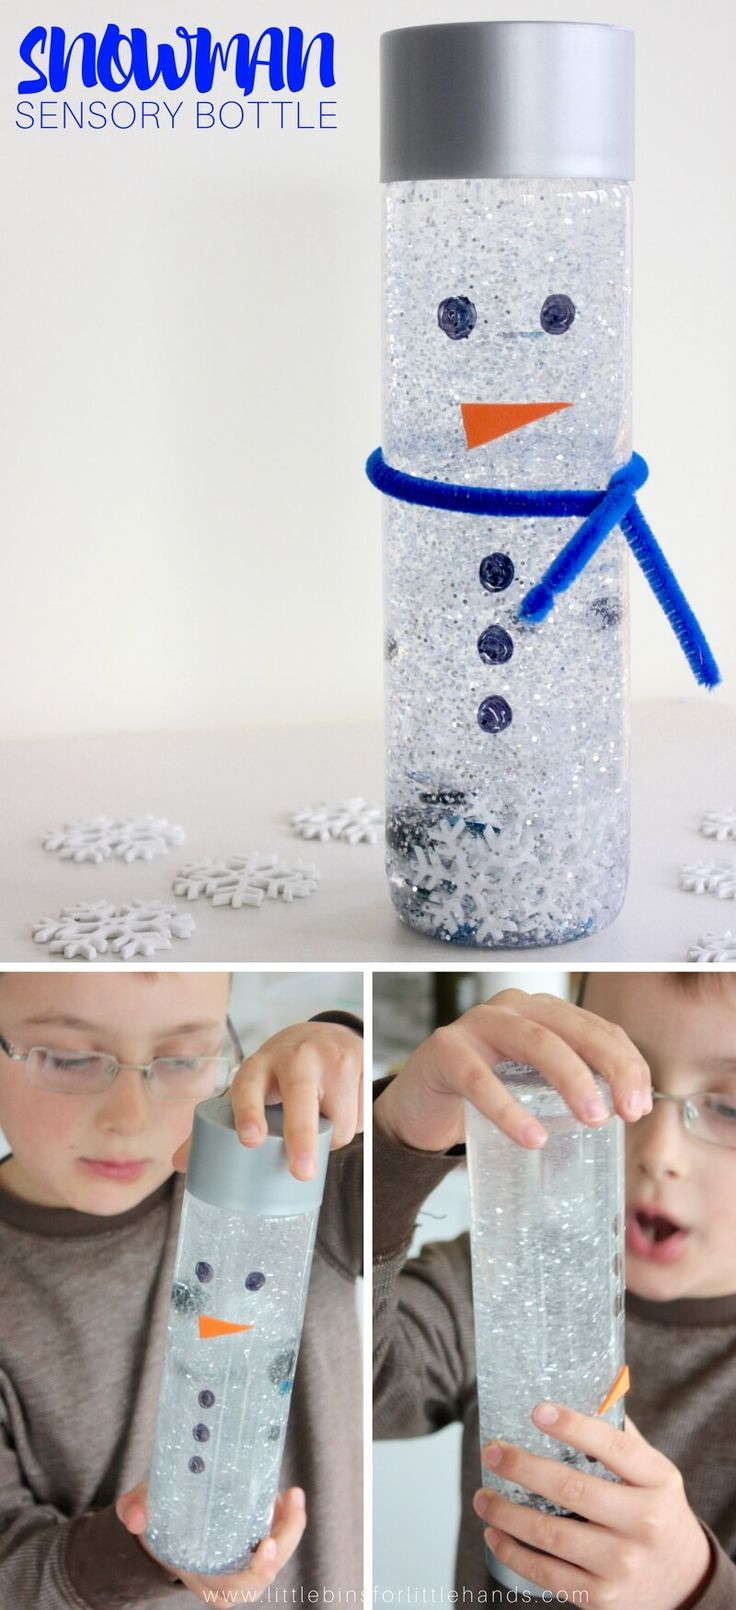 A snowman sensory bottle is exactly the place I prefer to see my snow, but my son loves the white fluffy stuff! However, I do live in New England, and I am no stranger to mounds of snow. It's mid-December here and pretty warm, 60 degrees warm! There is not one flake of snow in the air or in the forecast. So what do you instead of building a real snowman? My son and I made a snowman sensory bottle to enjoy the snow falls again. #sensory #sensorybottle #sensoryplay #winter #snowman #ece